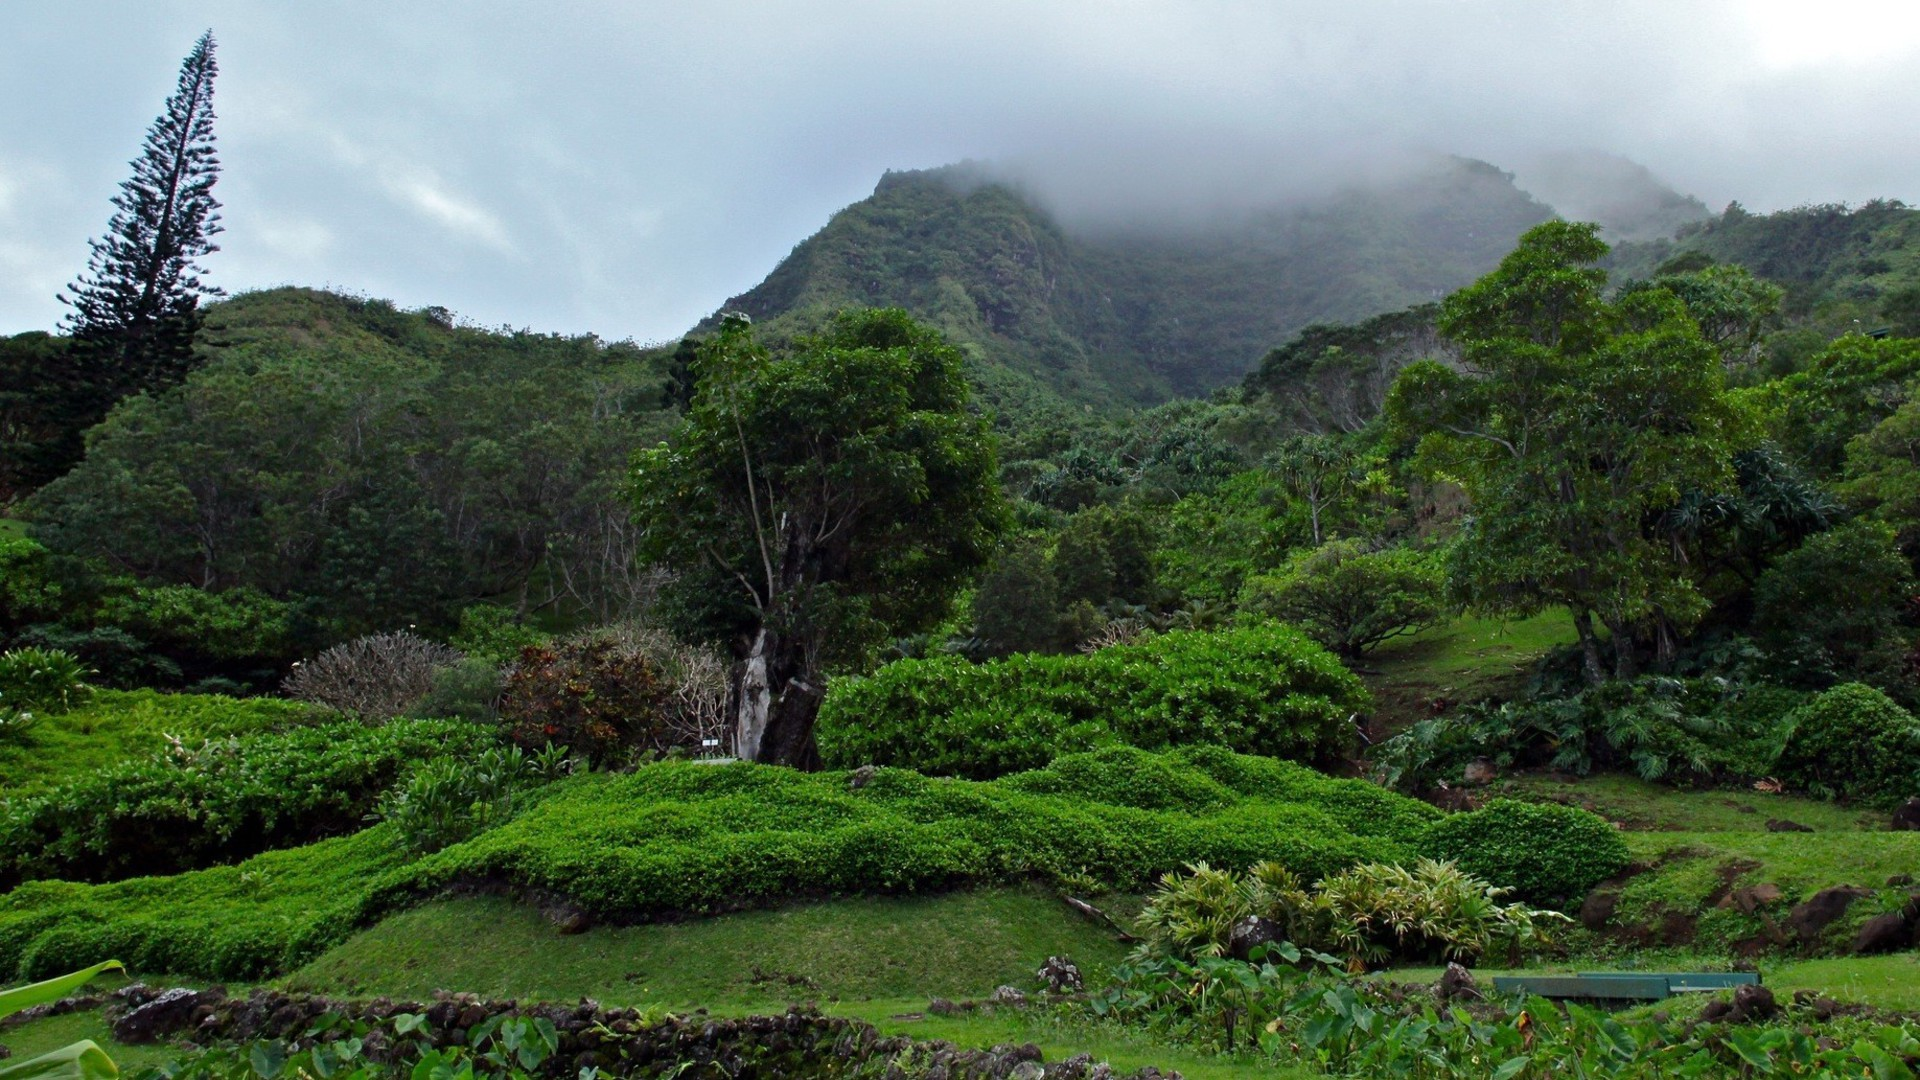 Green Mountains Landscapes Nature Trees Jungle Forest Fog